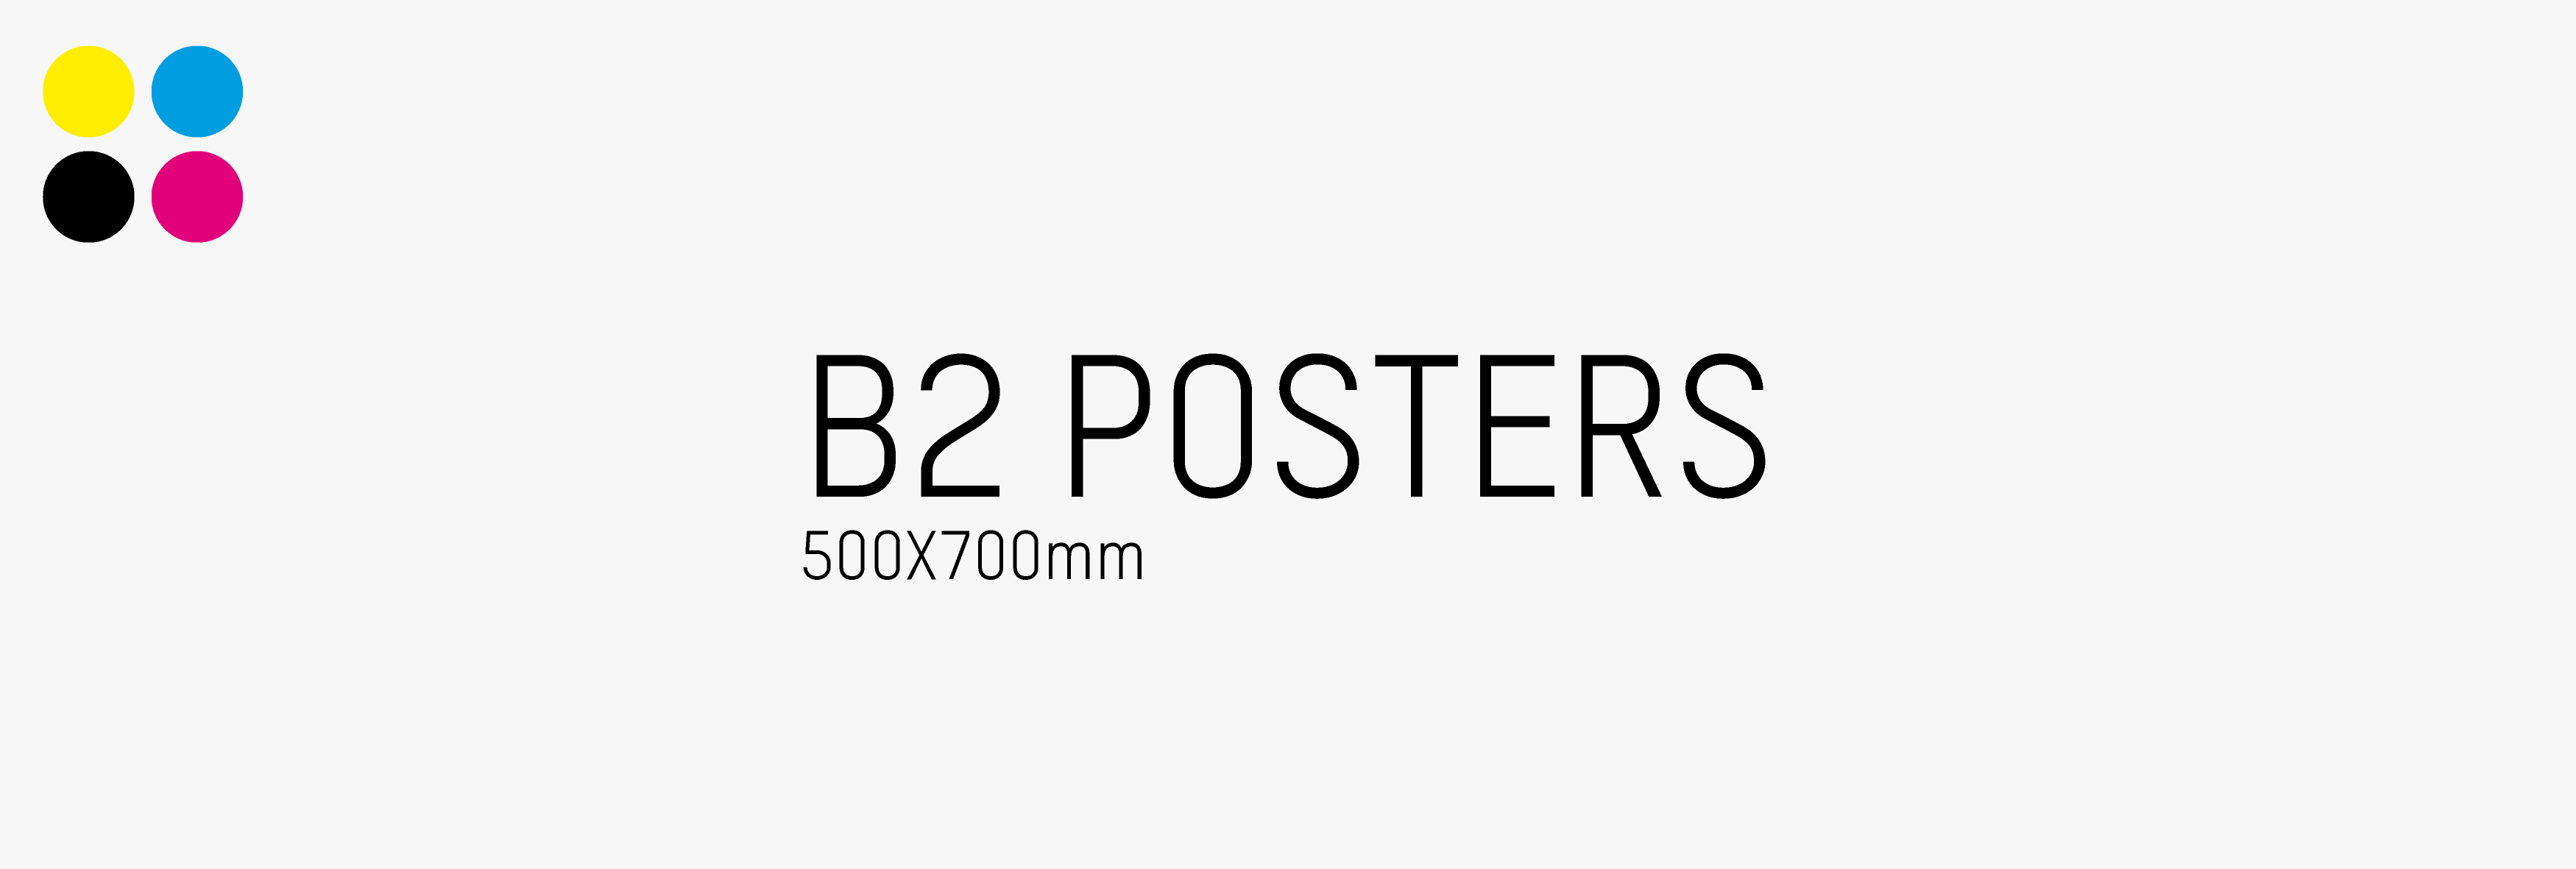 B2-posters